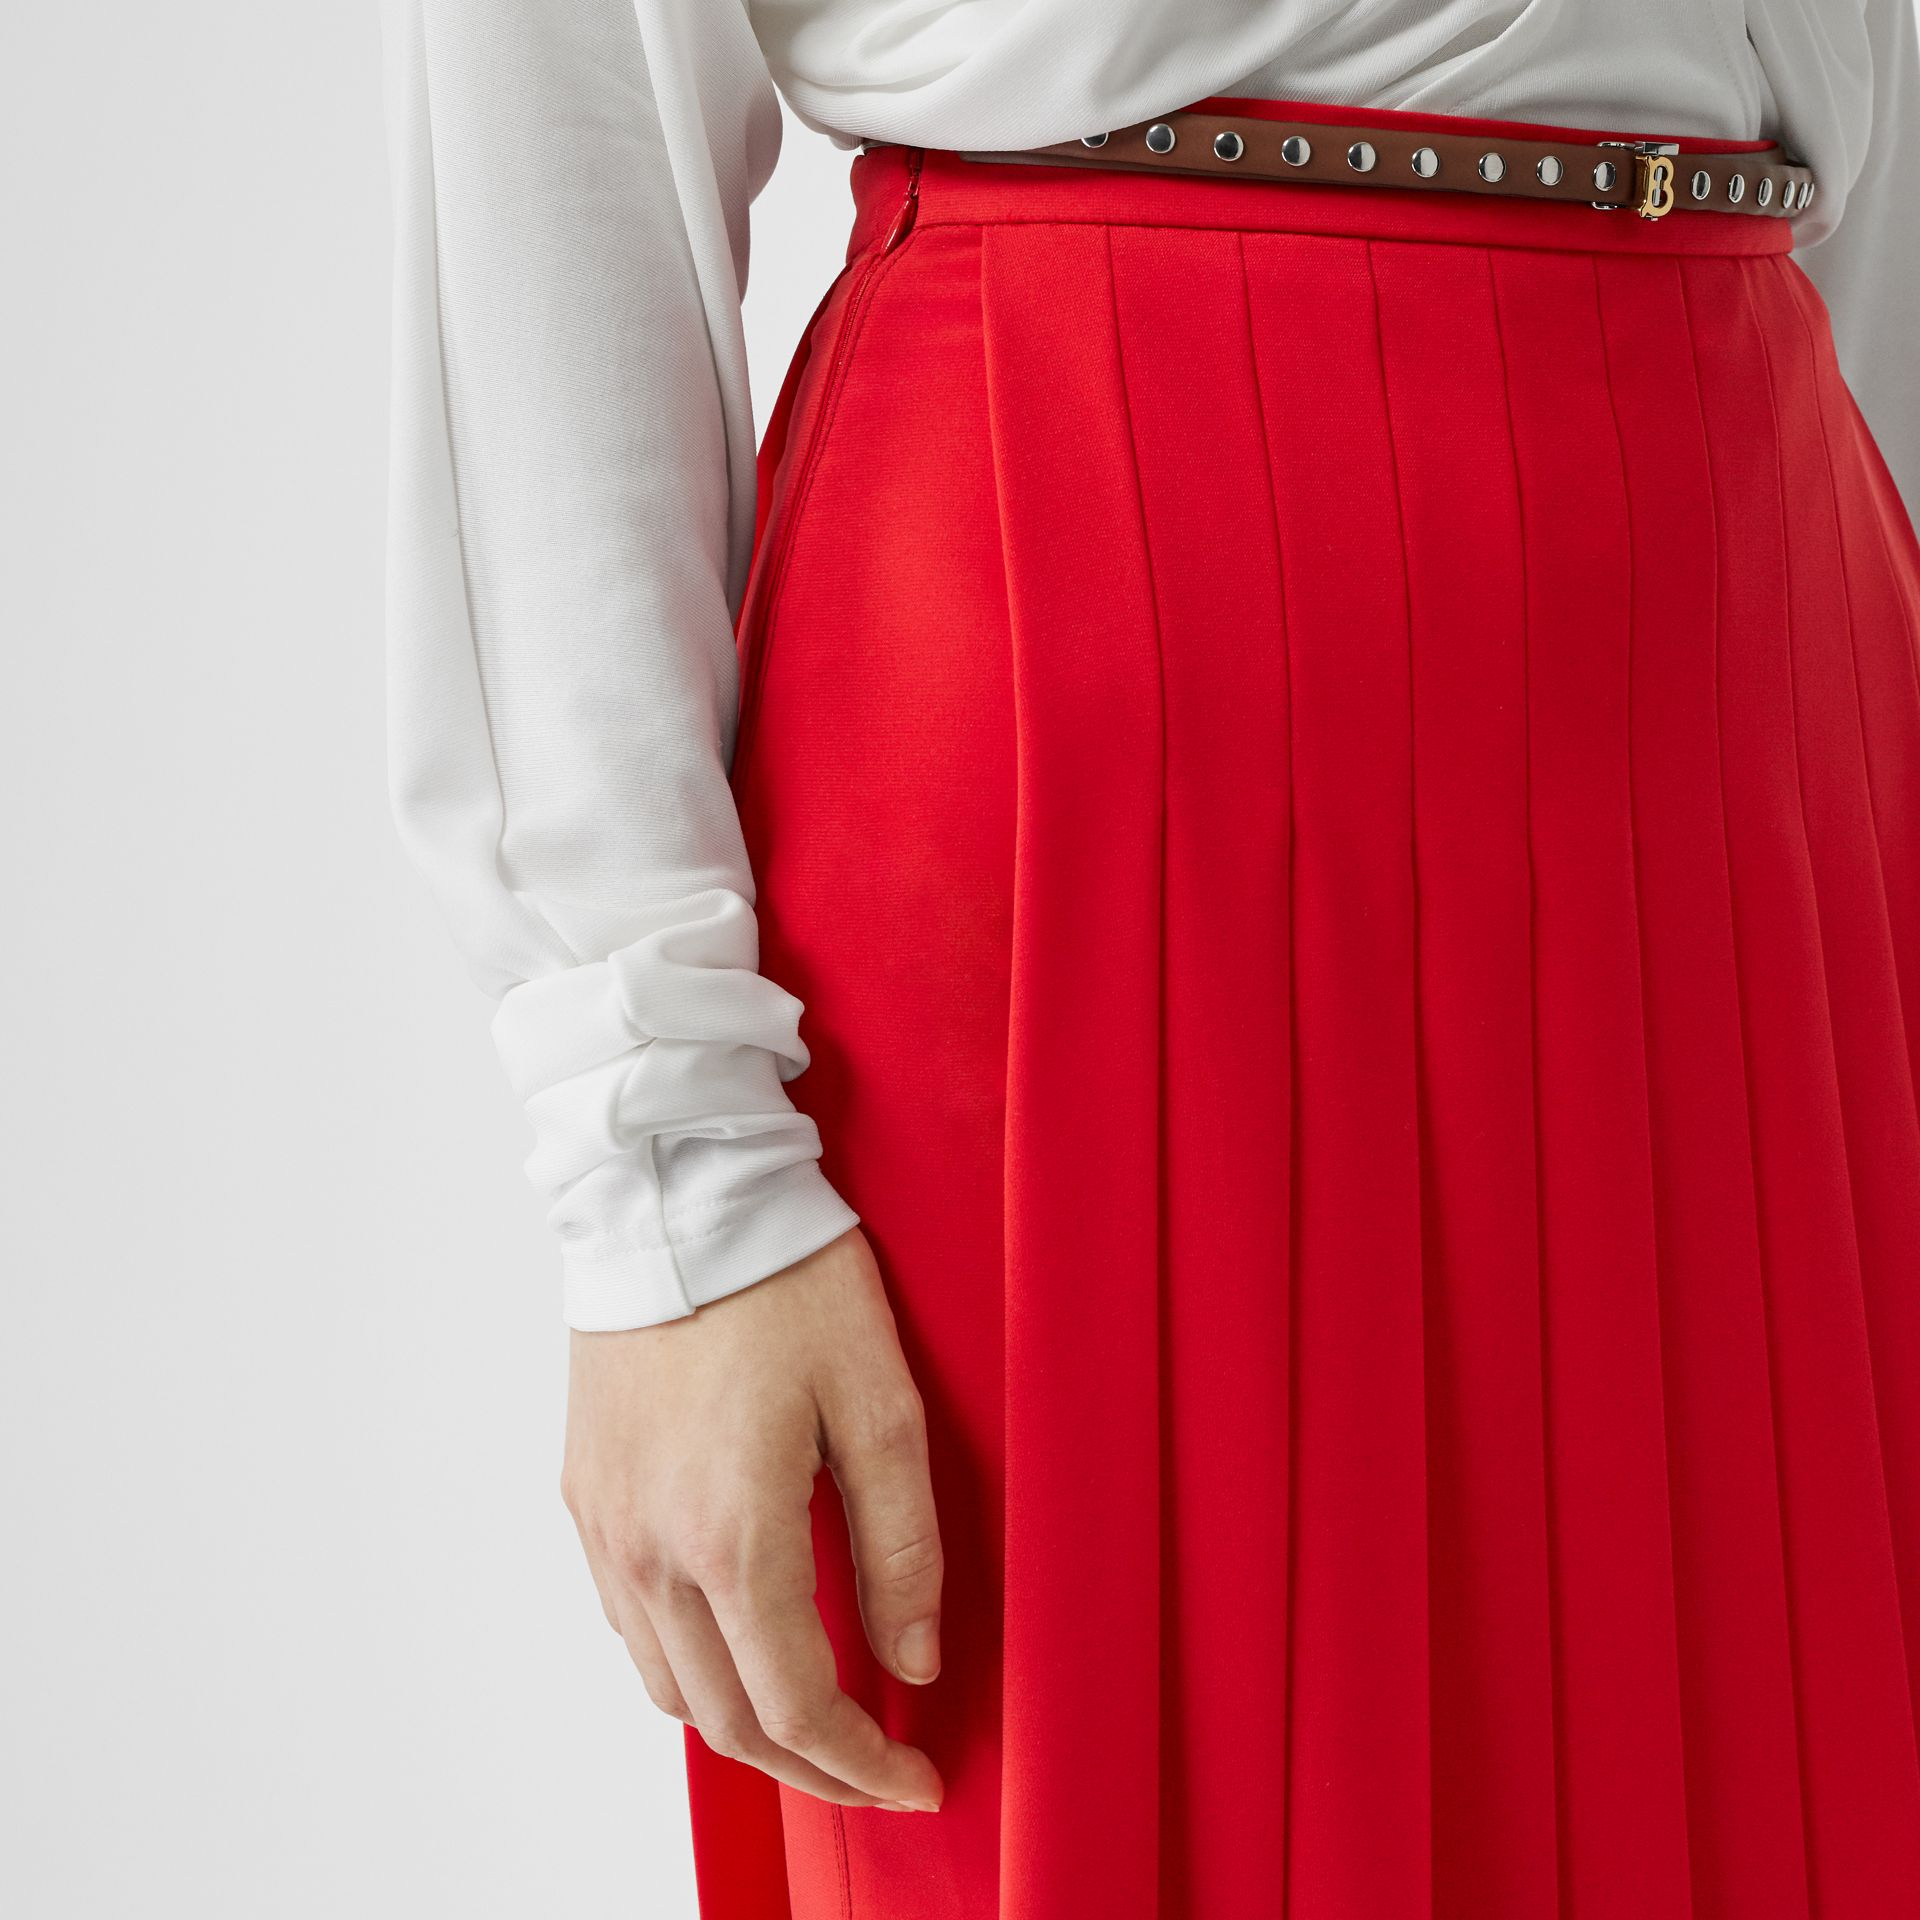 Stretch Cady Pleated Skirt in Bright Red - Women | Burberry Hong Kong - gallery image 1